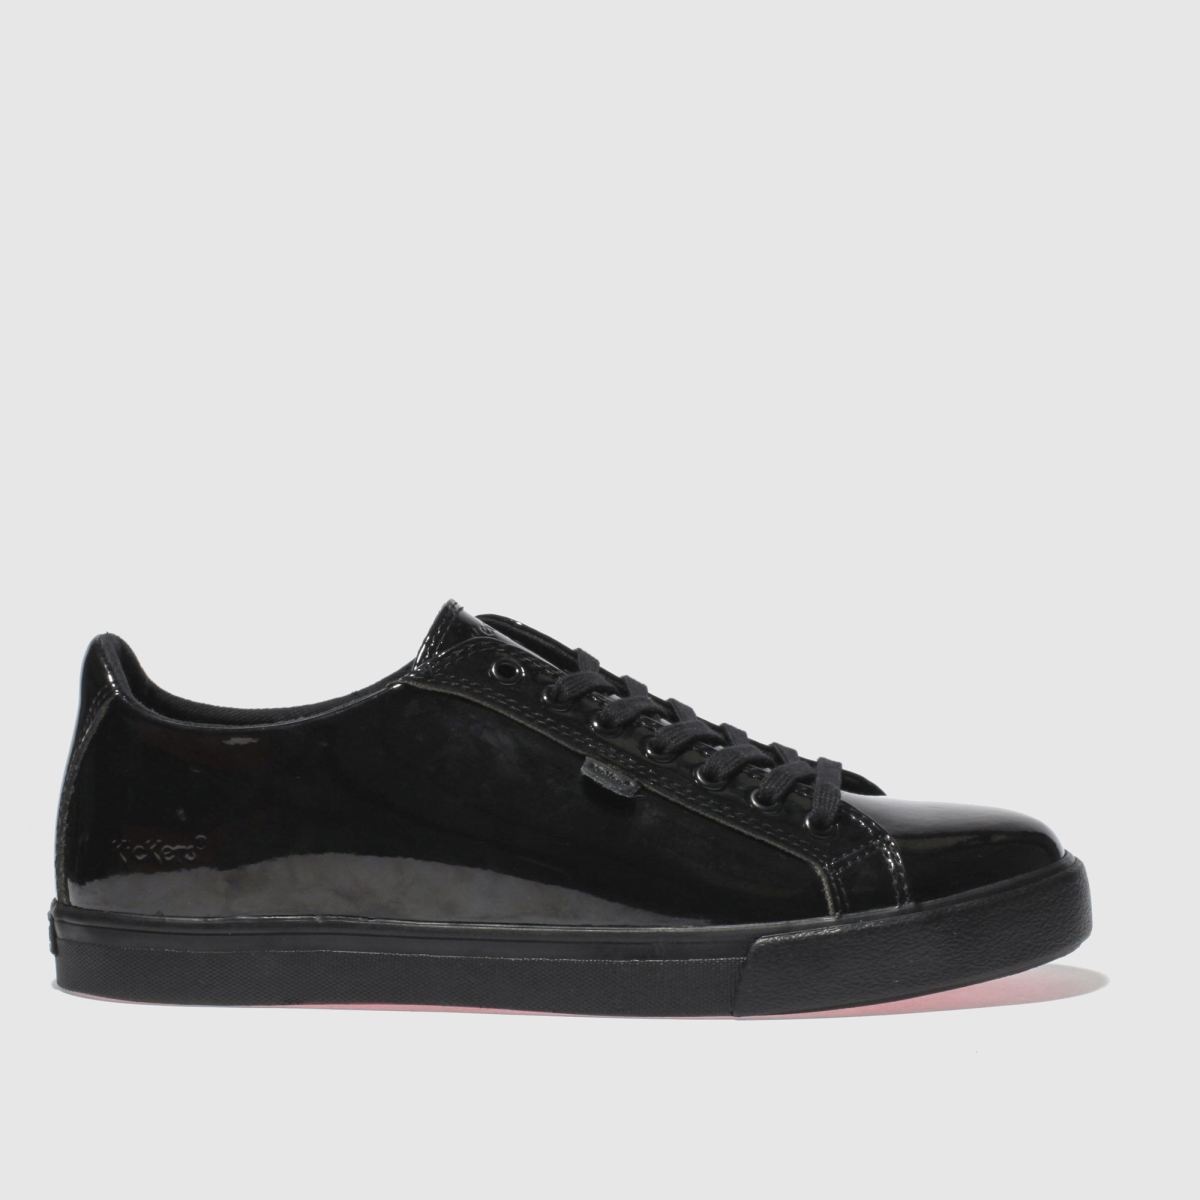 Kickers Black Tovni Lacer Flat Shoes